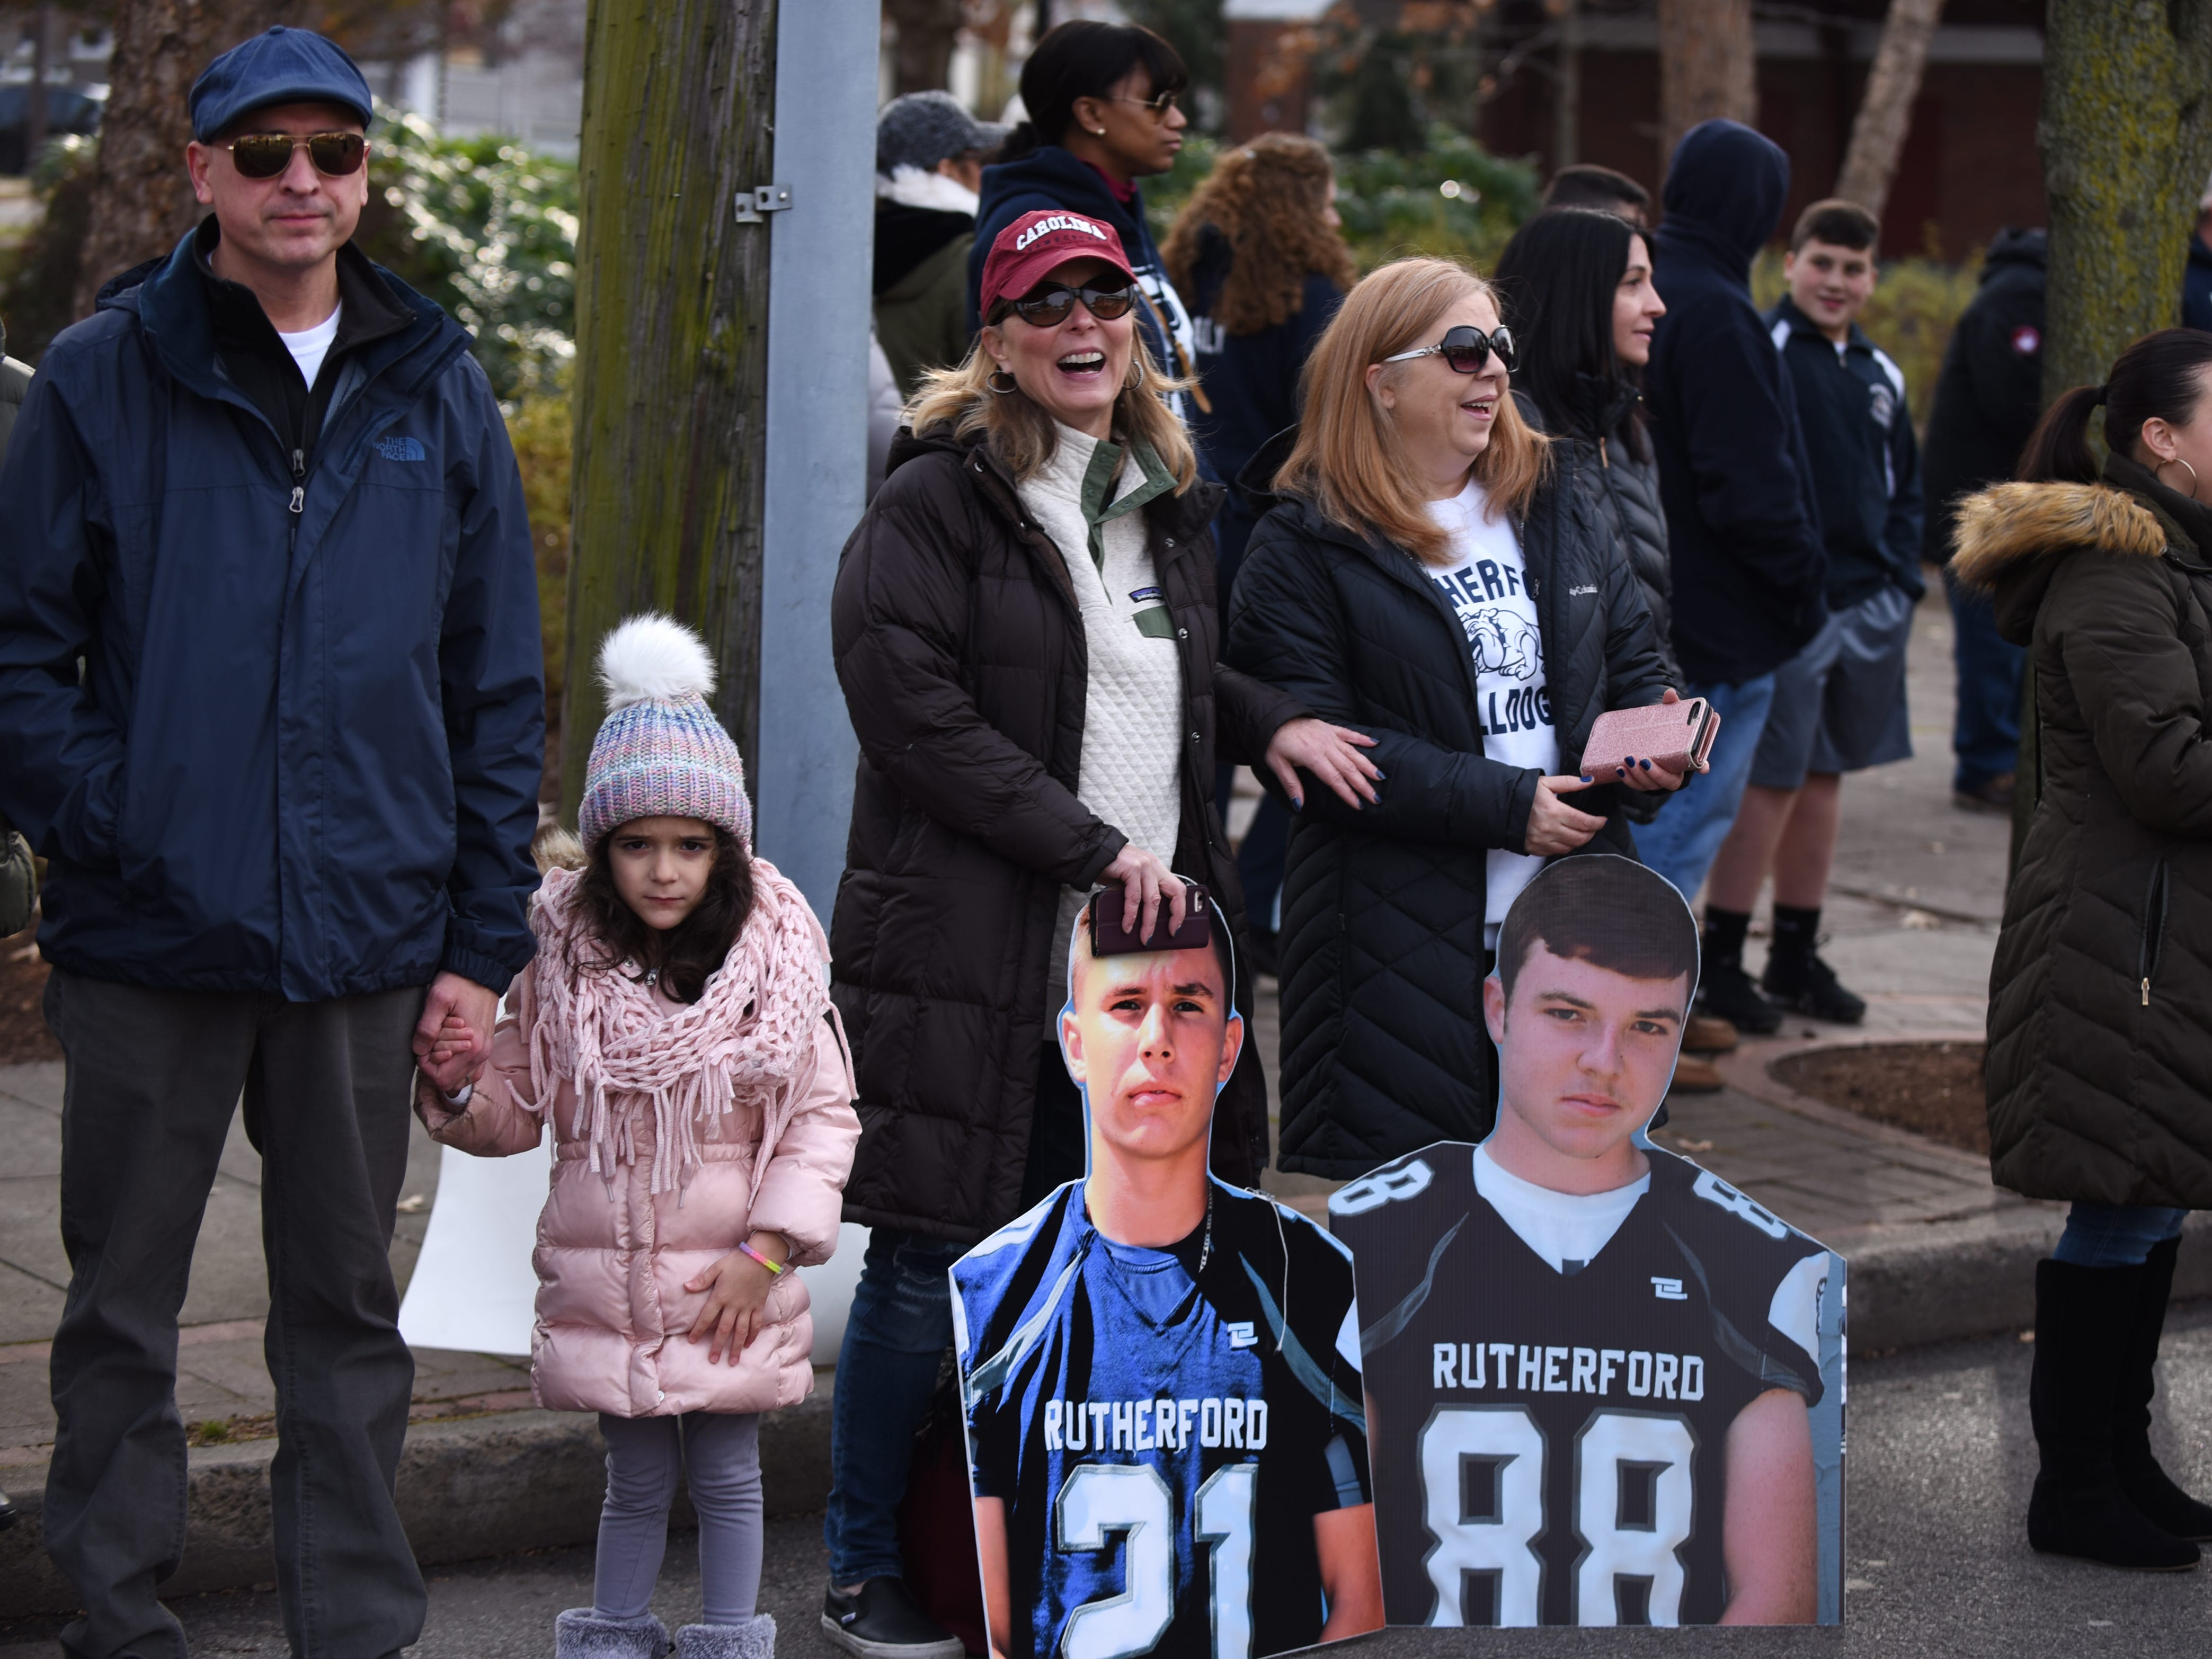 People cheer on the Rutherford Football parade in Rutherford on Saturday December 1, 2018.